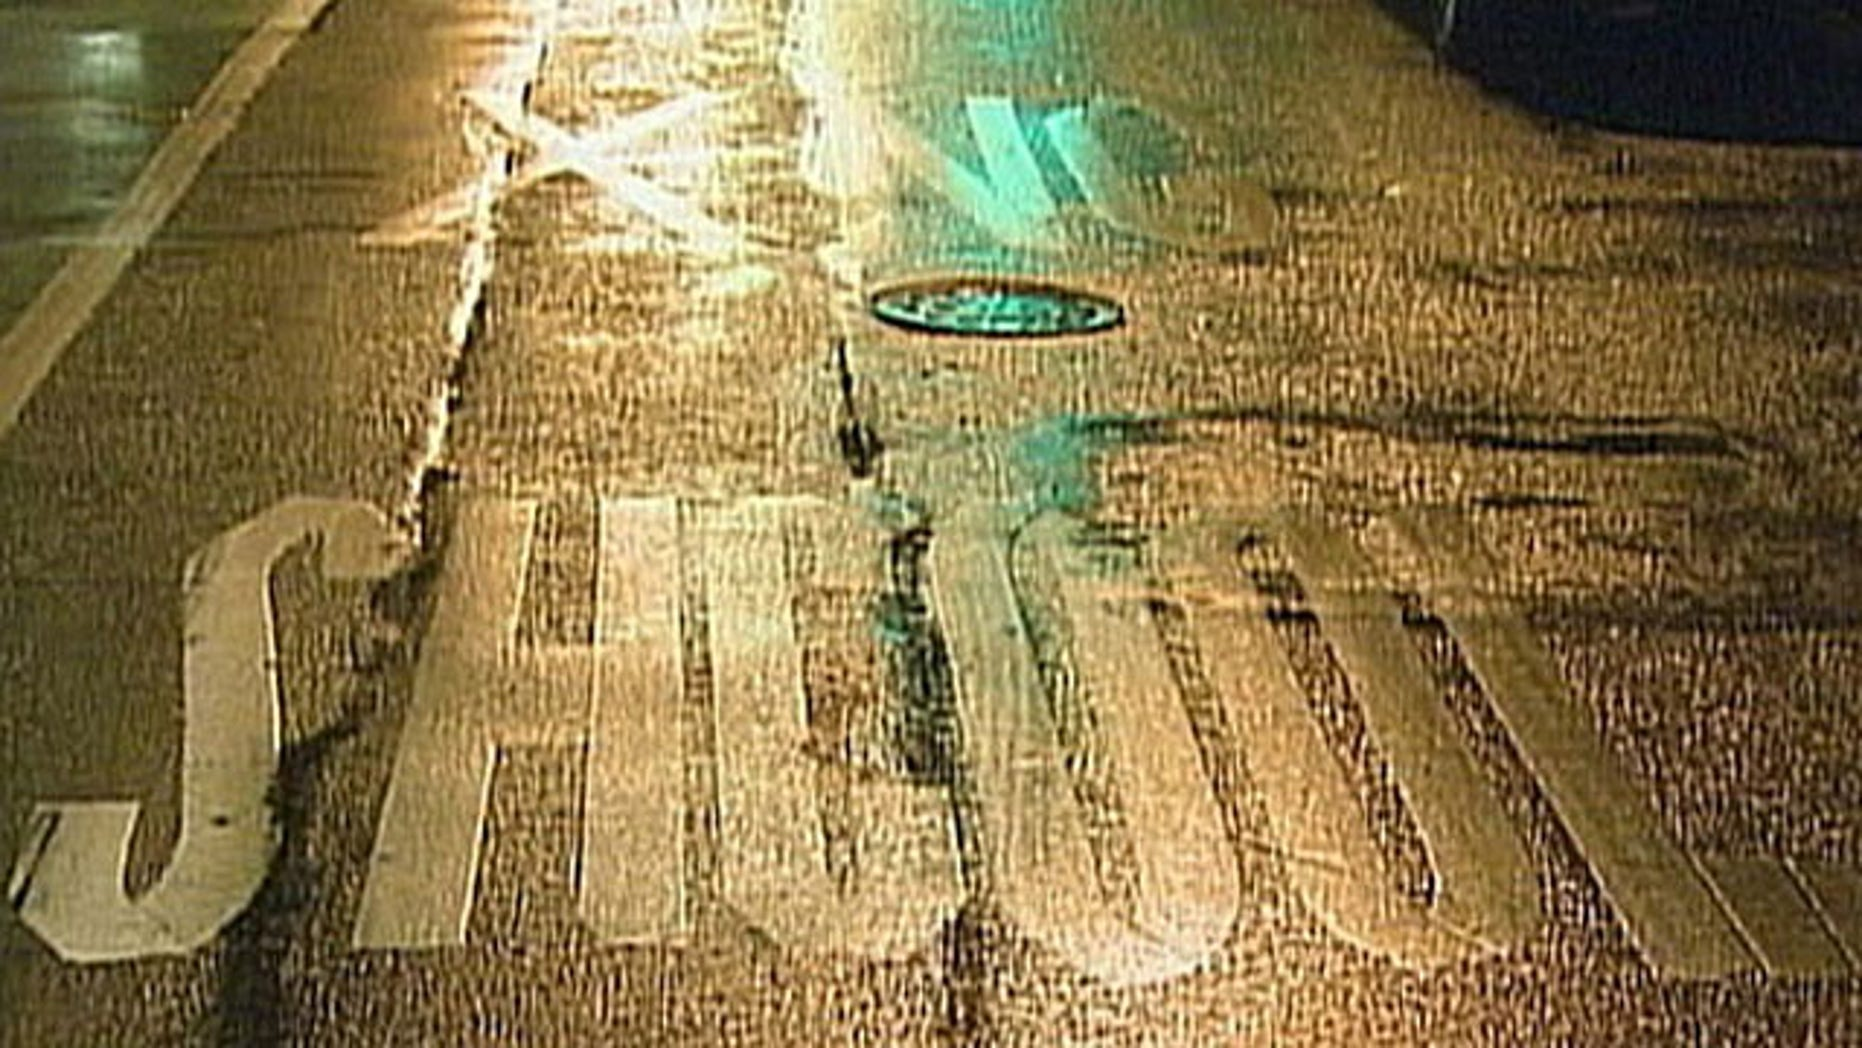 """The word school was misspelled as """"shcool"""" on Stanton Street in front of Marta Valle High School. The error was made sometime last summer, MyFoxNY.com reports."""